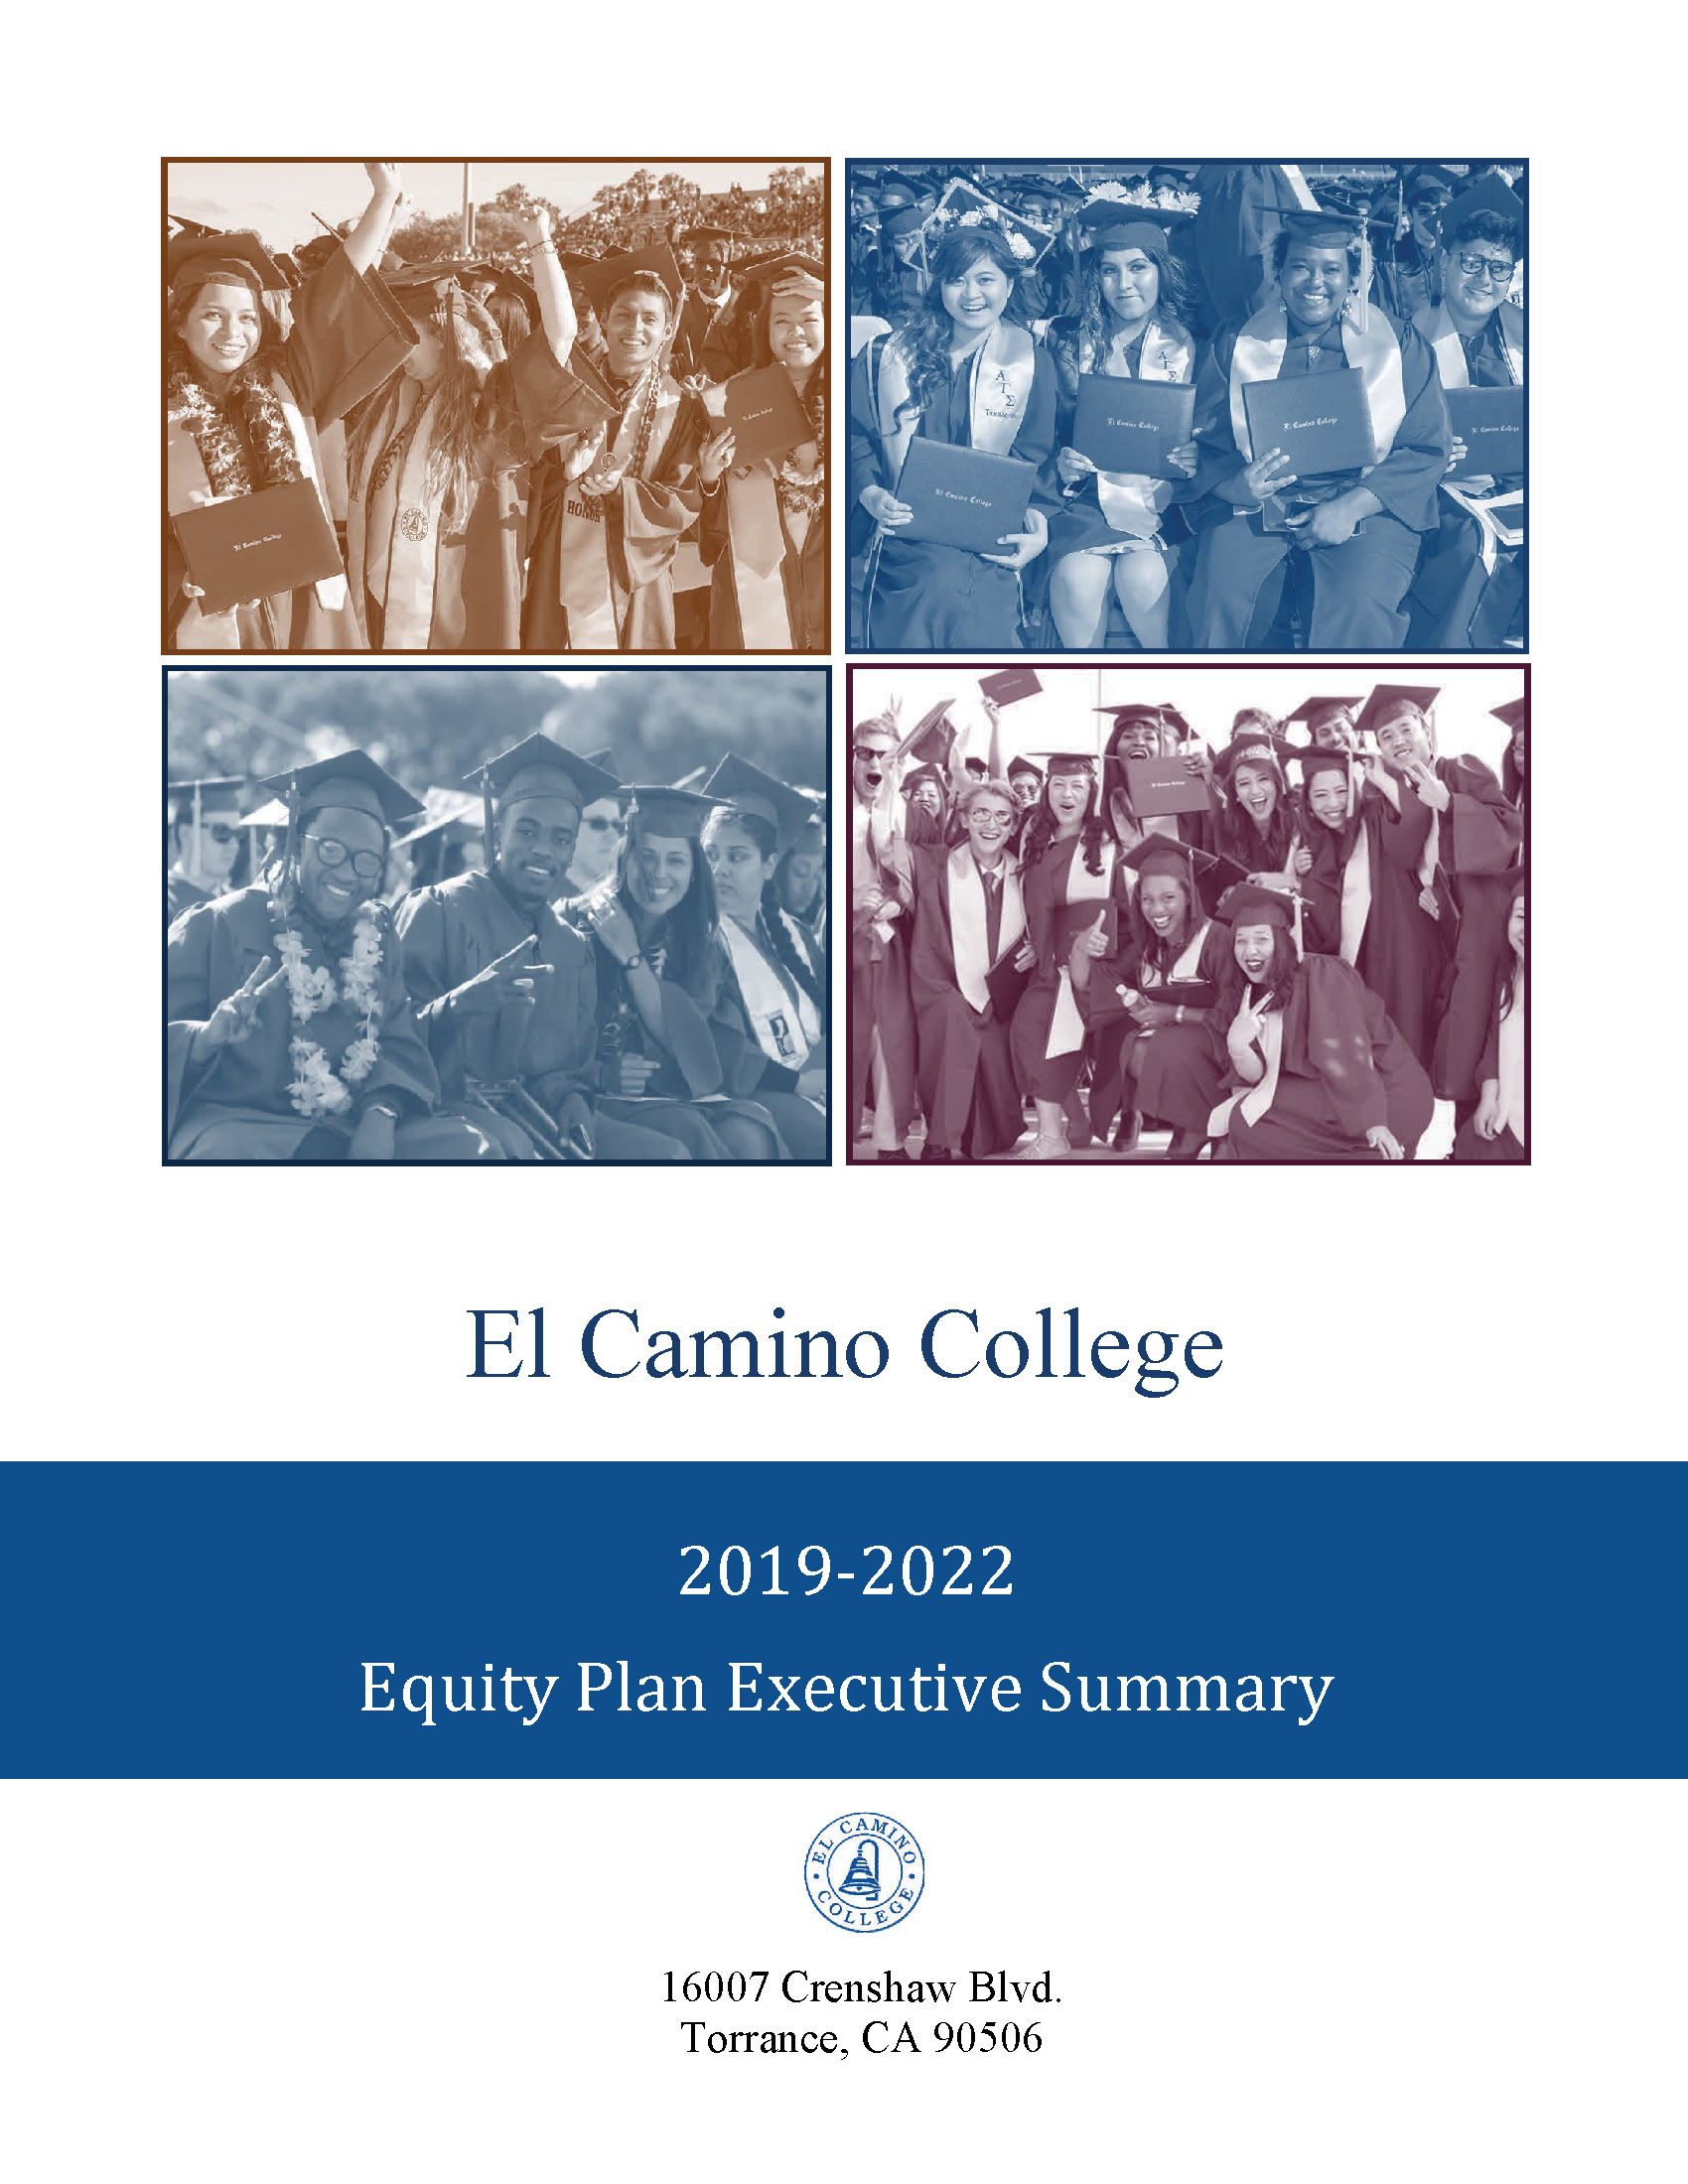 Student Equity Program 2019 - 2020 Executive Summary